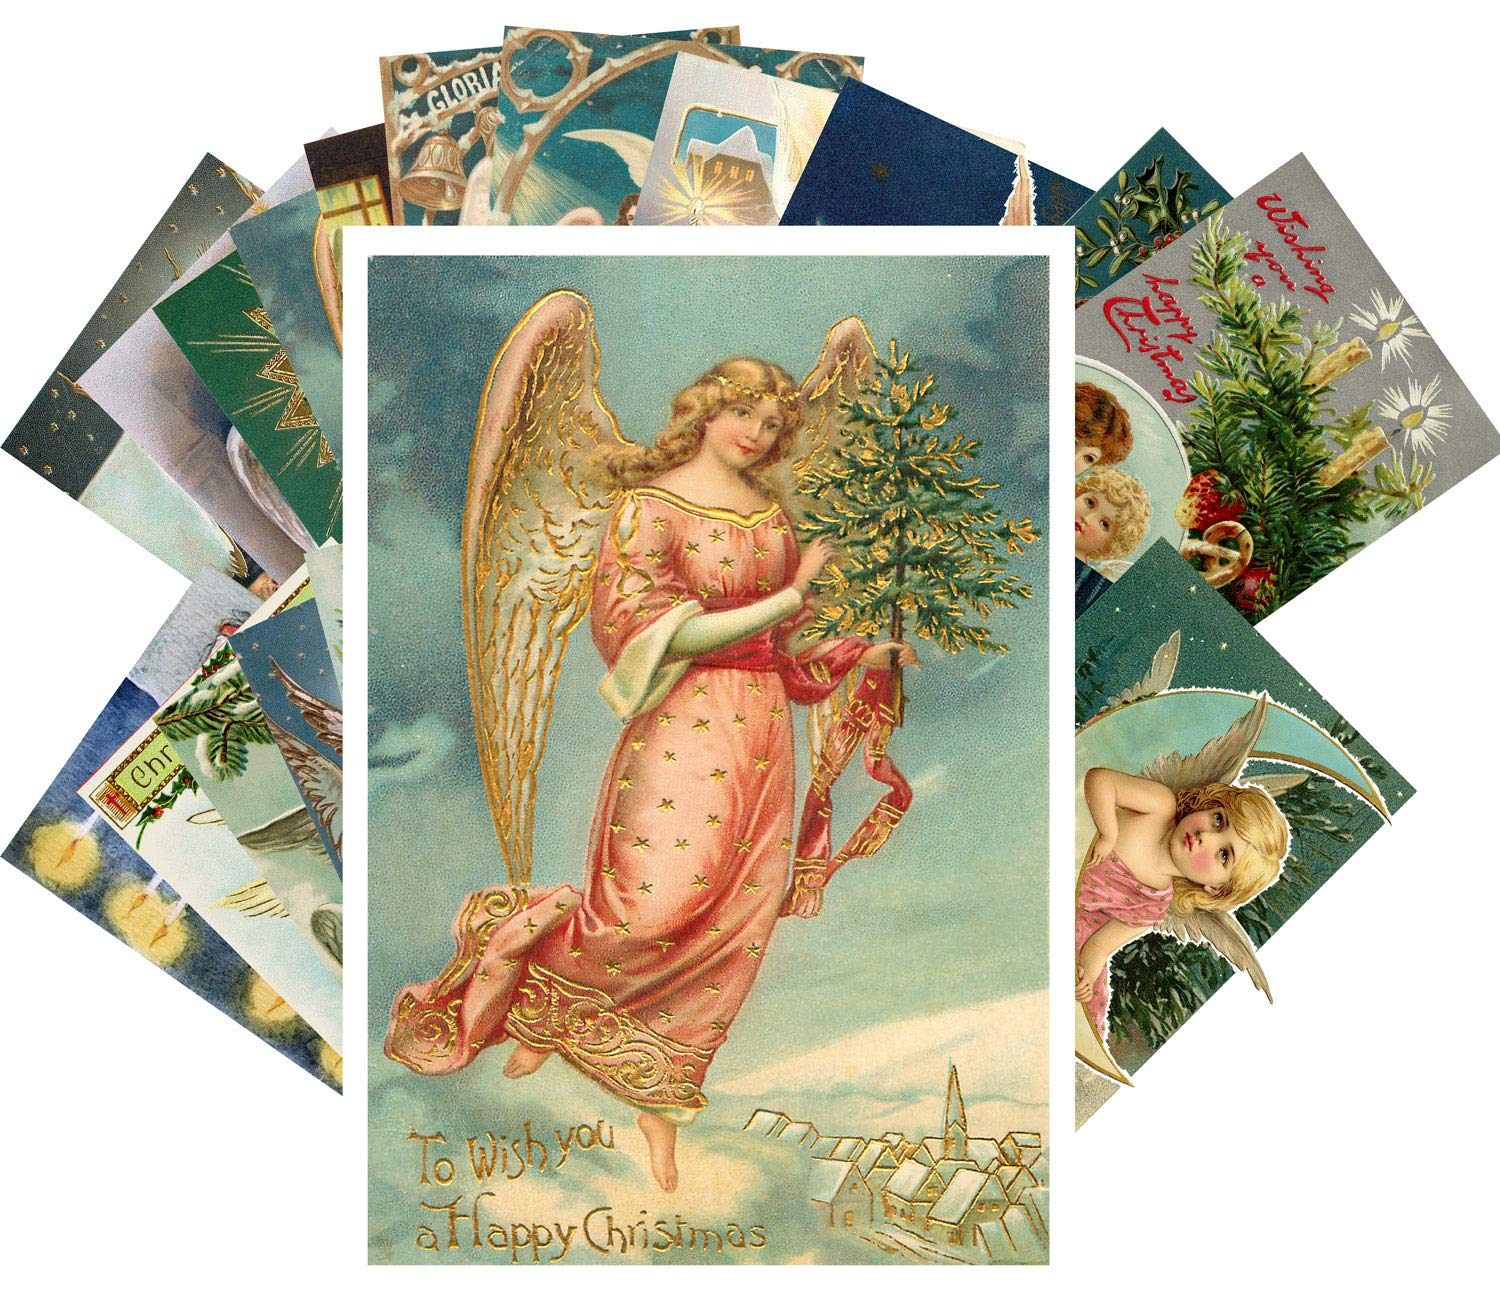 Amazon.com: Vintage Christmas Greeting Cards 24pcs Jesus Born This Day  Antique Angels Reprint Postcard Set: Health & Personal Care